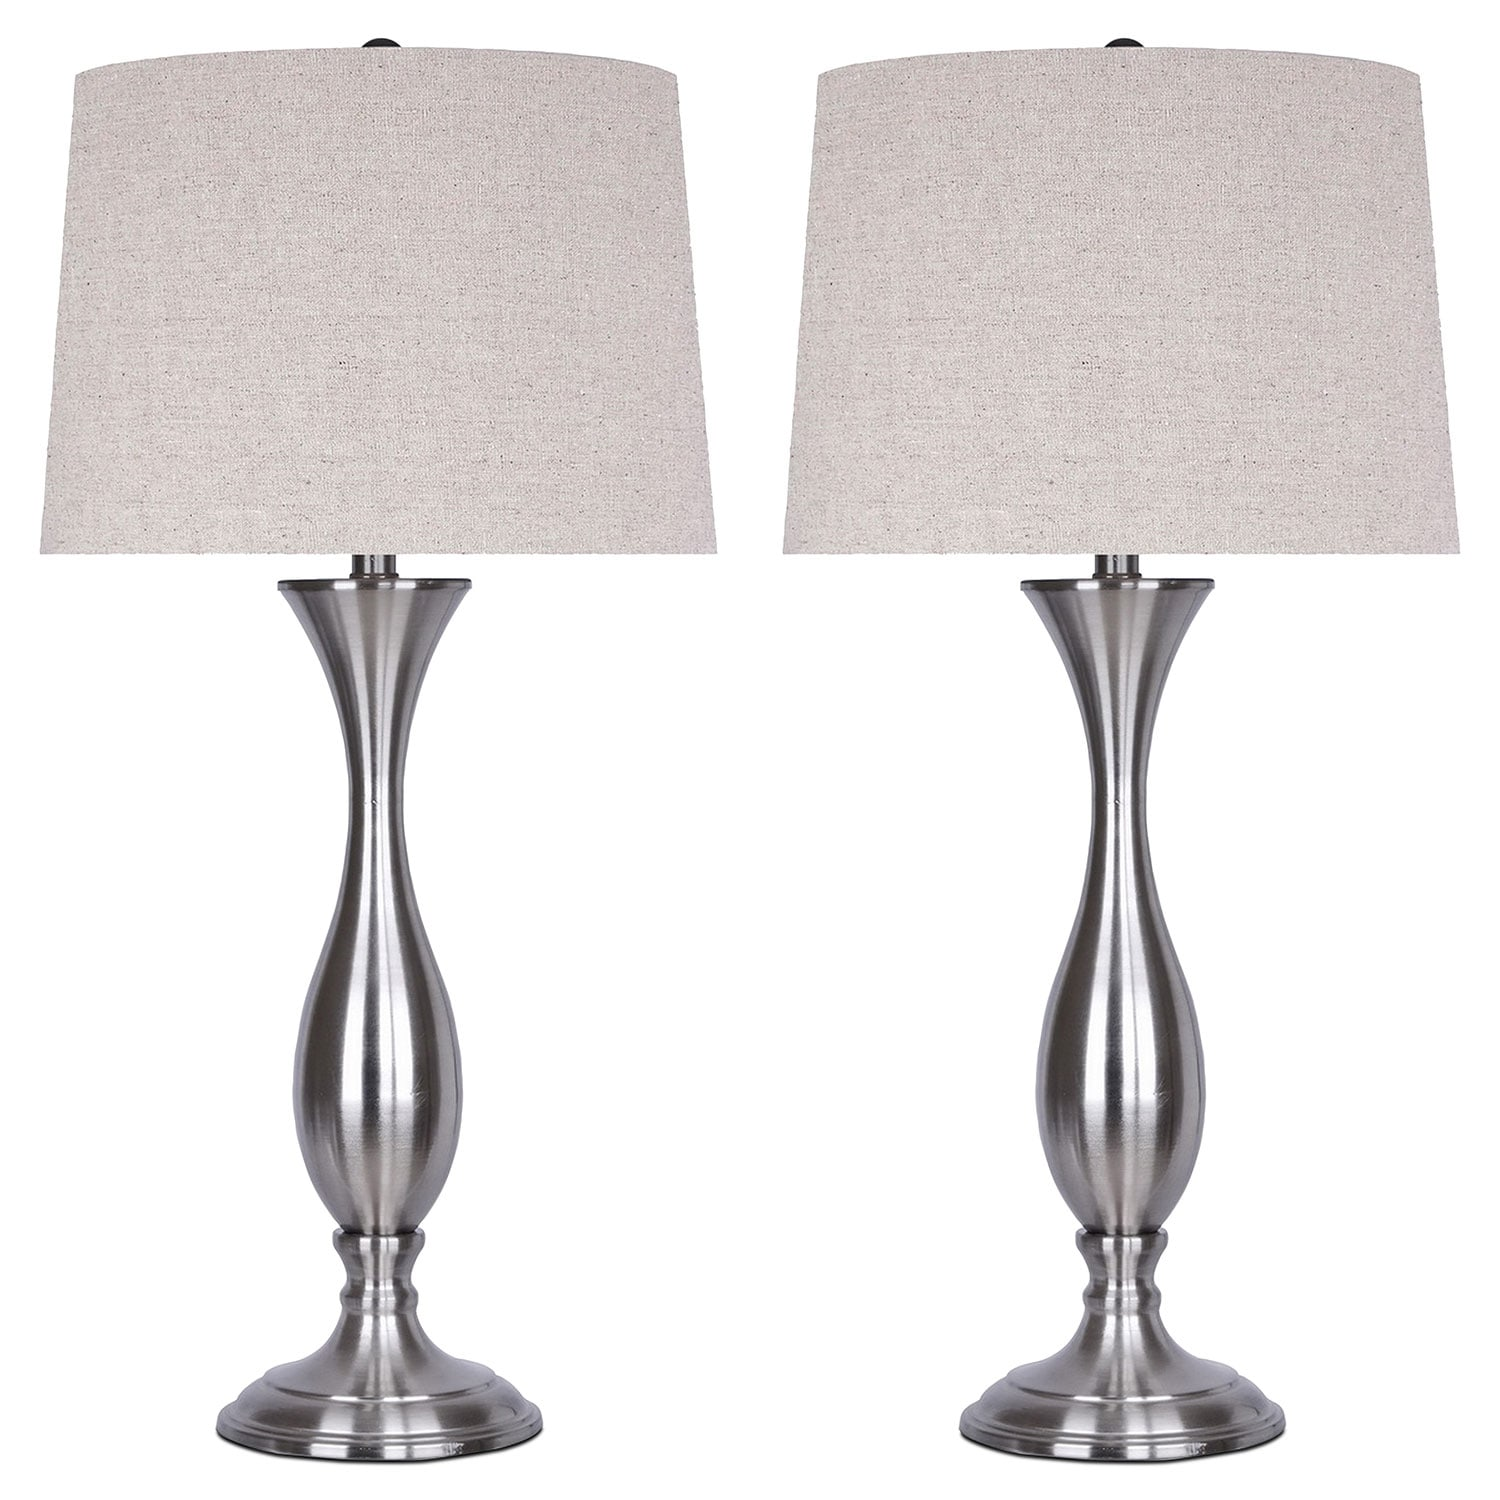 Home Accessories - Brushed Nickel 2-Piece Table Lamp Set